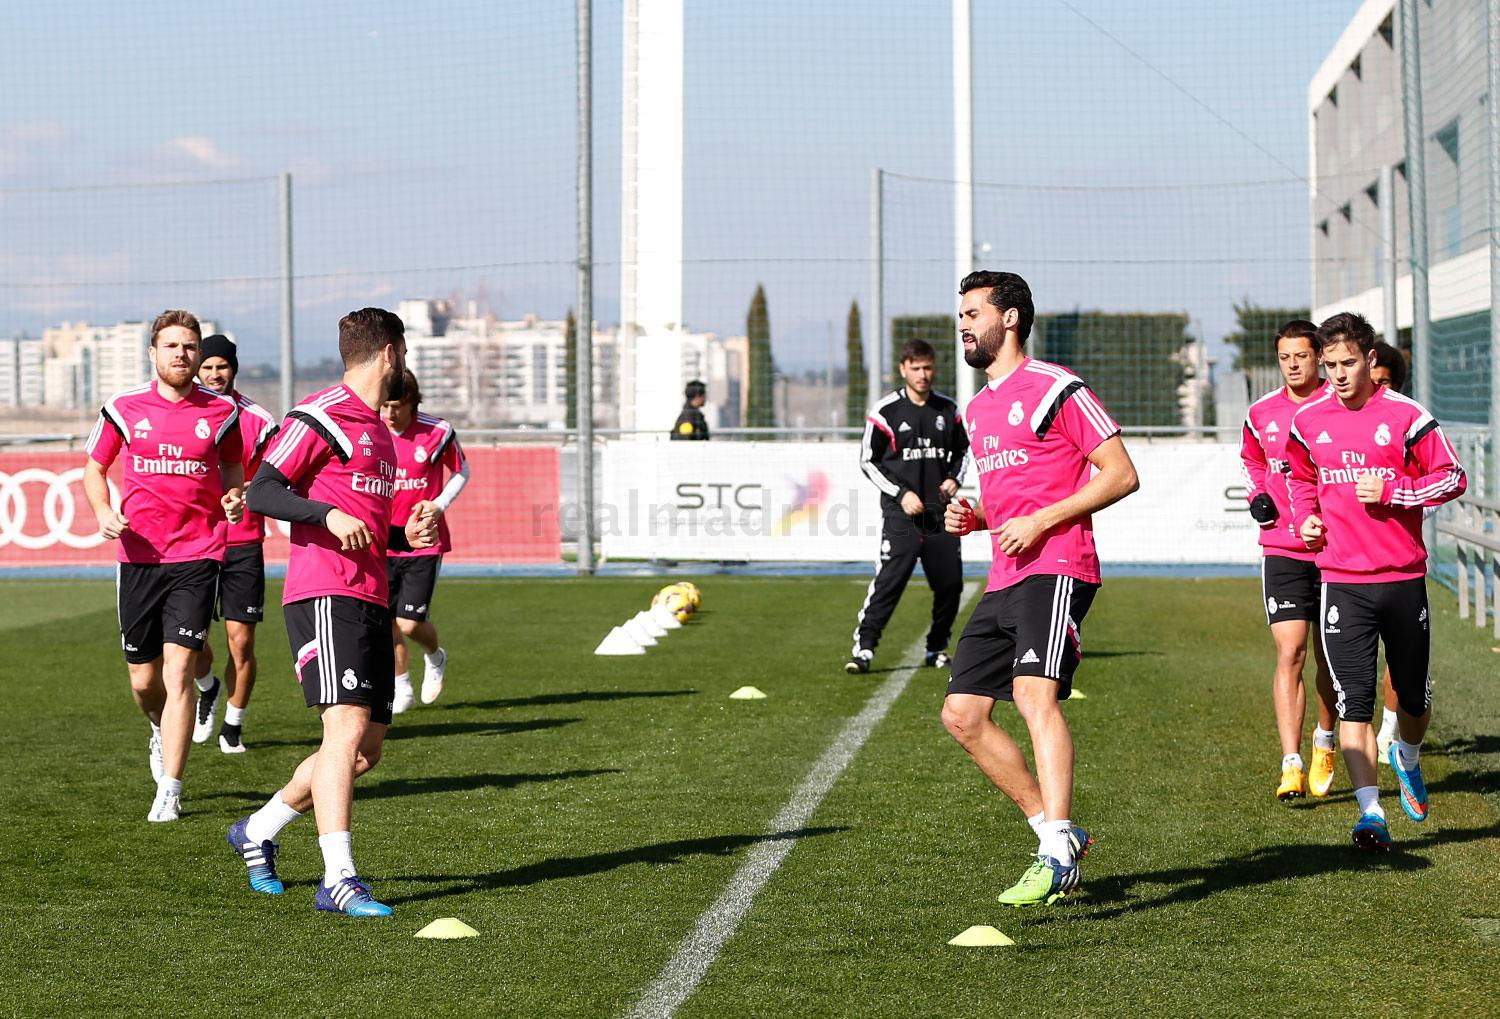 Real Madrid - Entrenamiento del Real Madrid - 19-02-2015